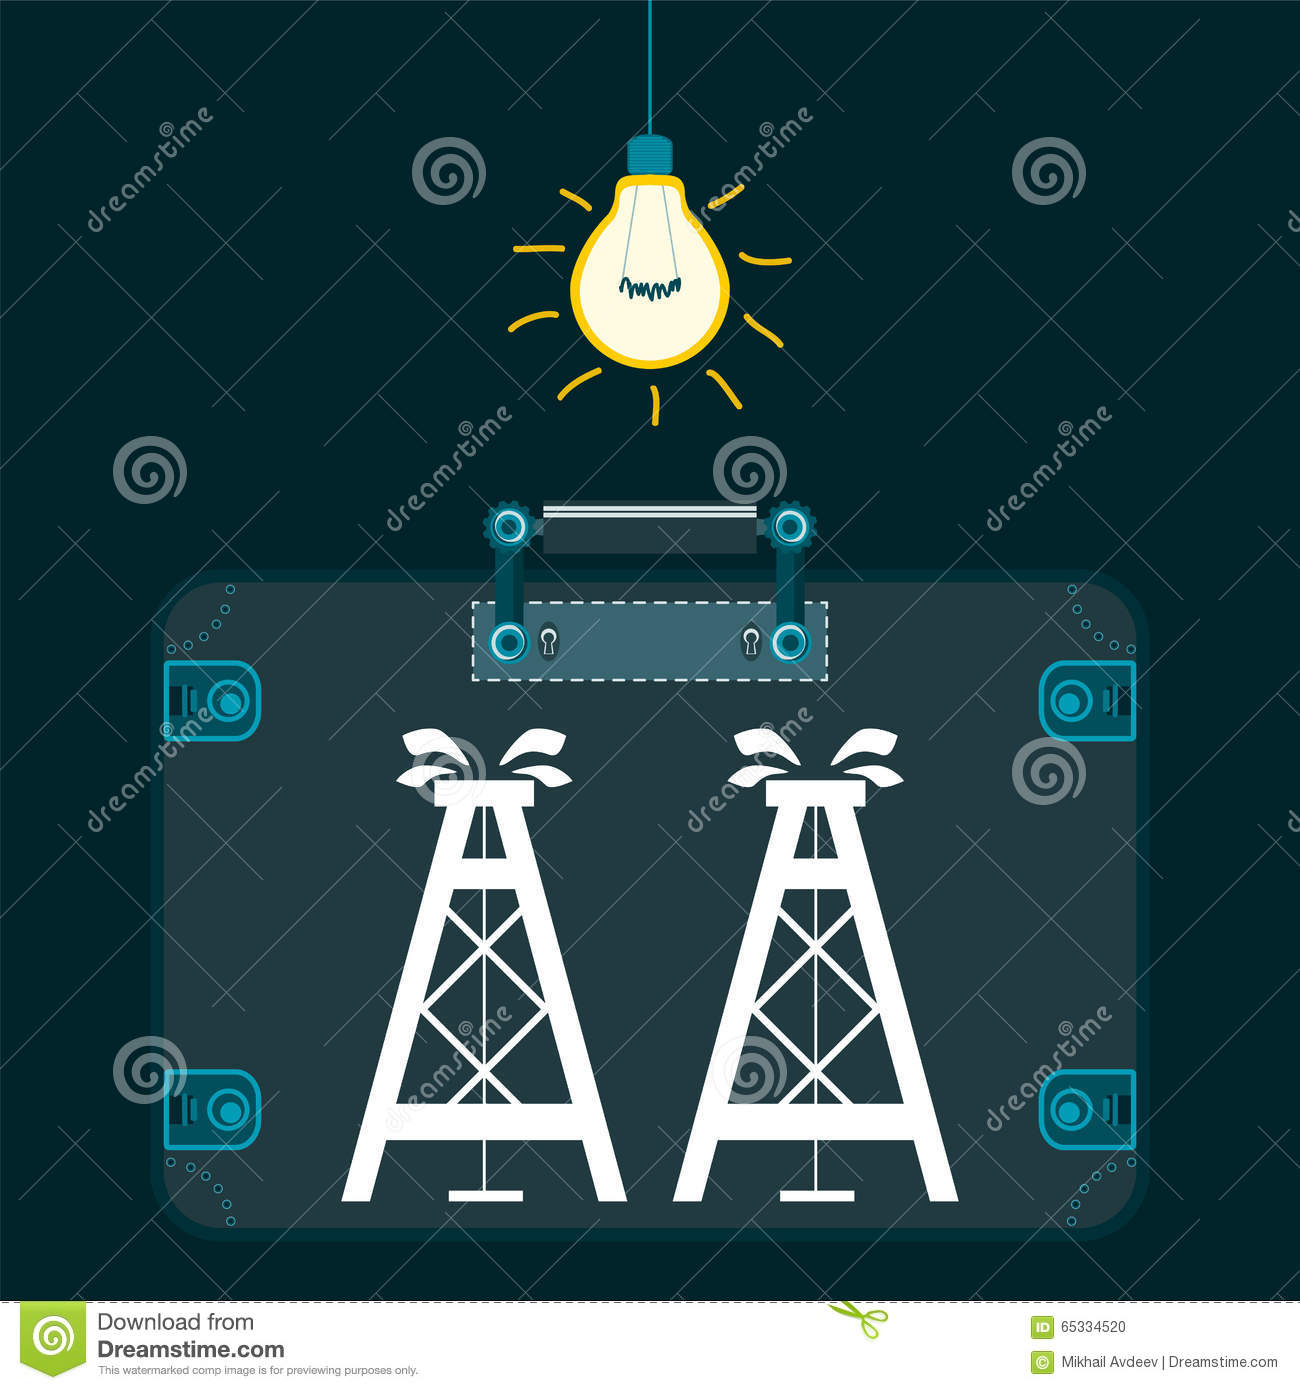 Dark room with light bulb - Oil Rig In A Suitcase In A Dark Room With Light Bulb Stock Vector